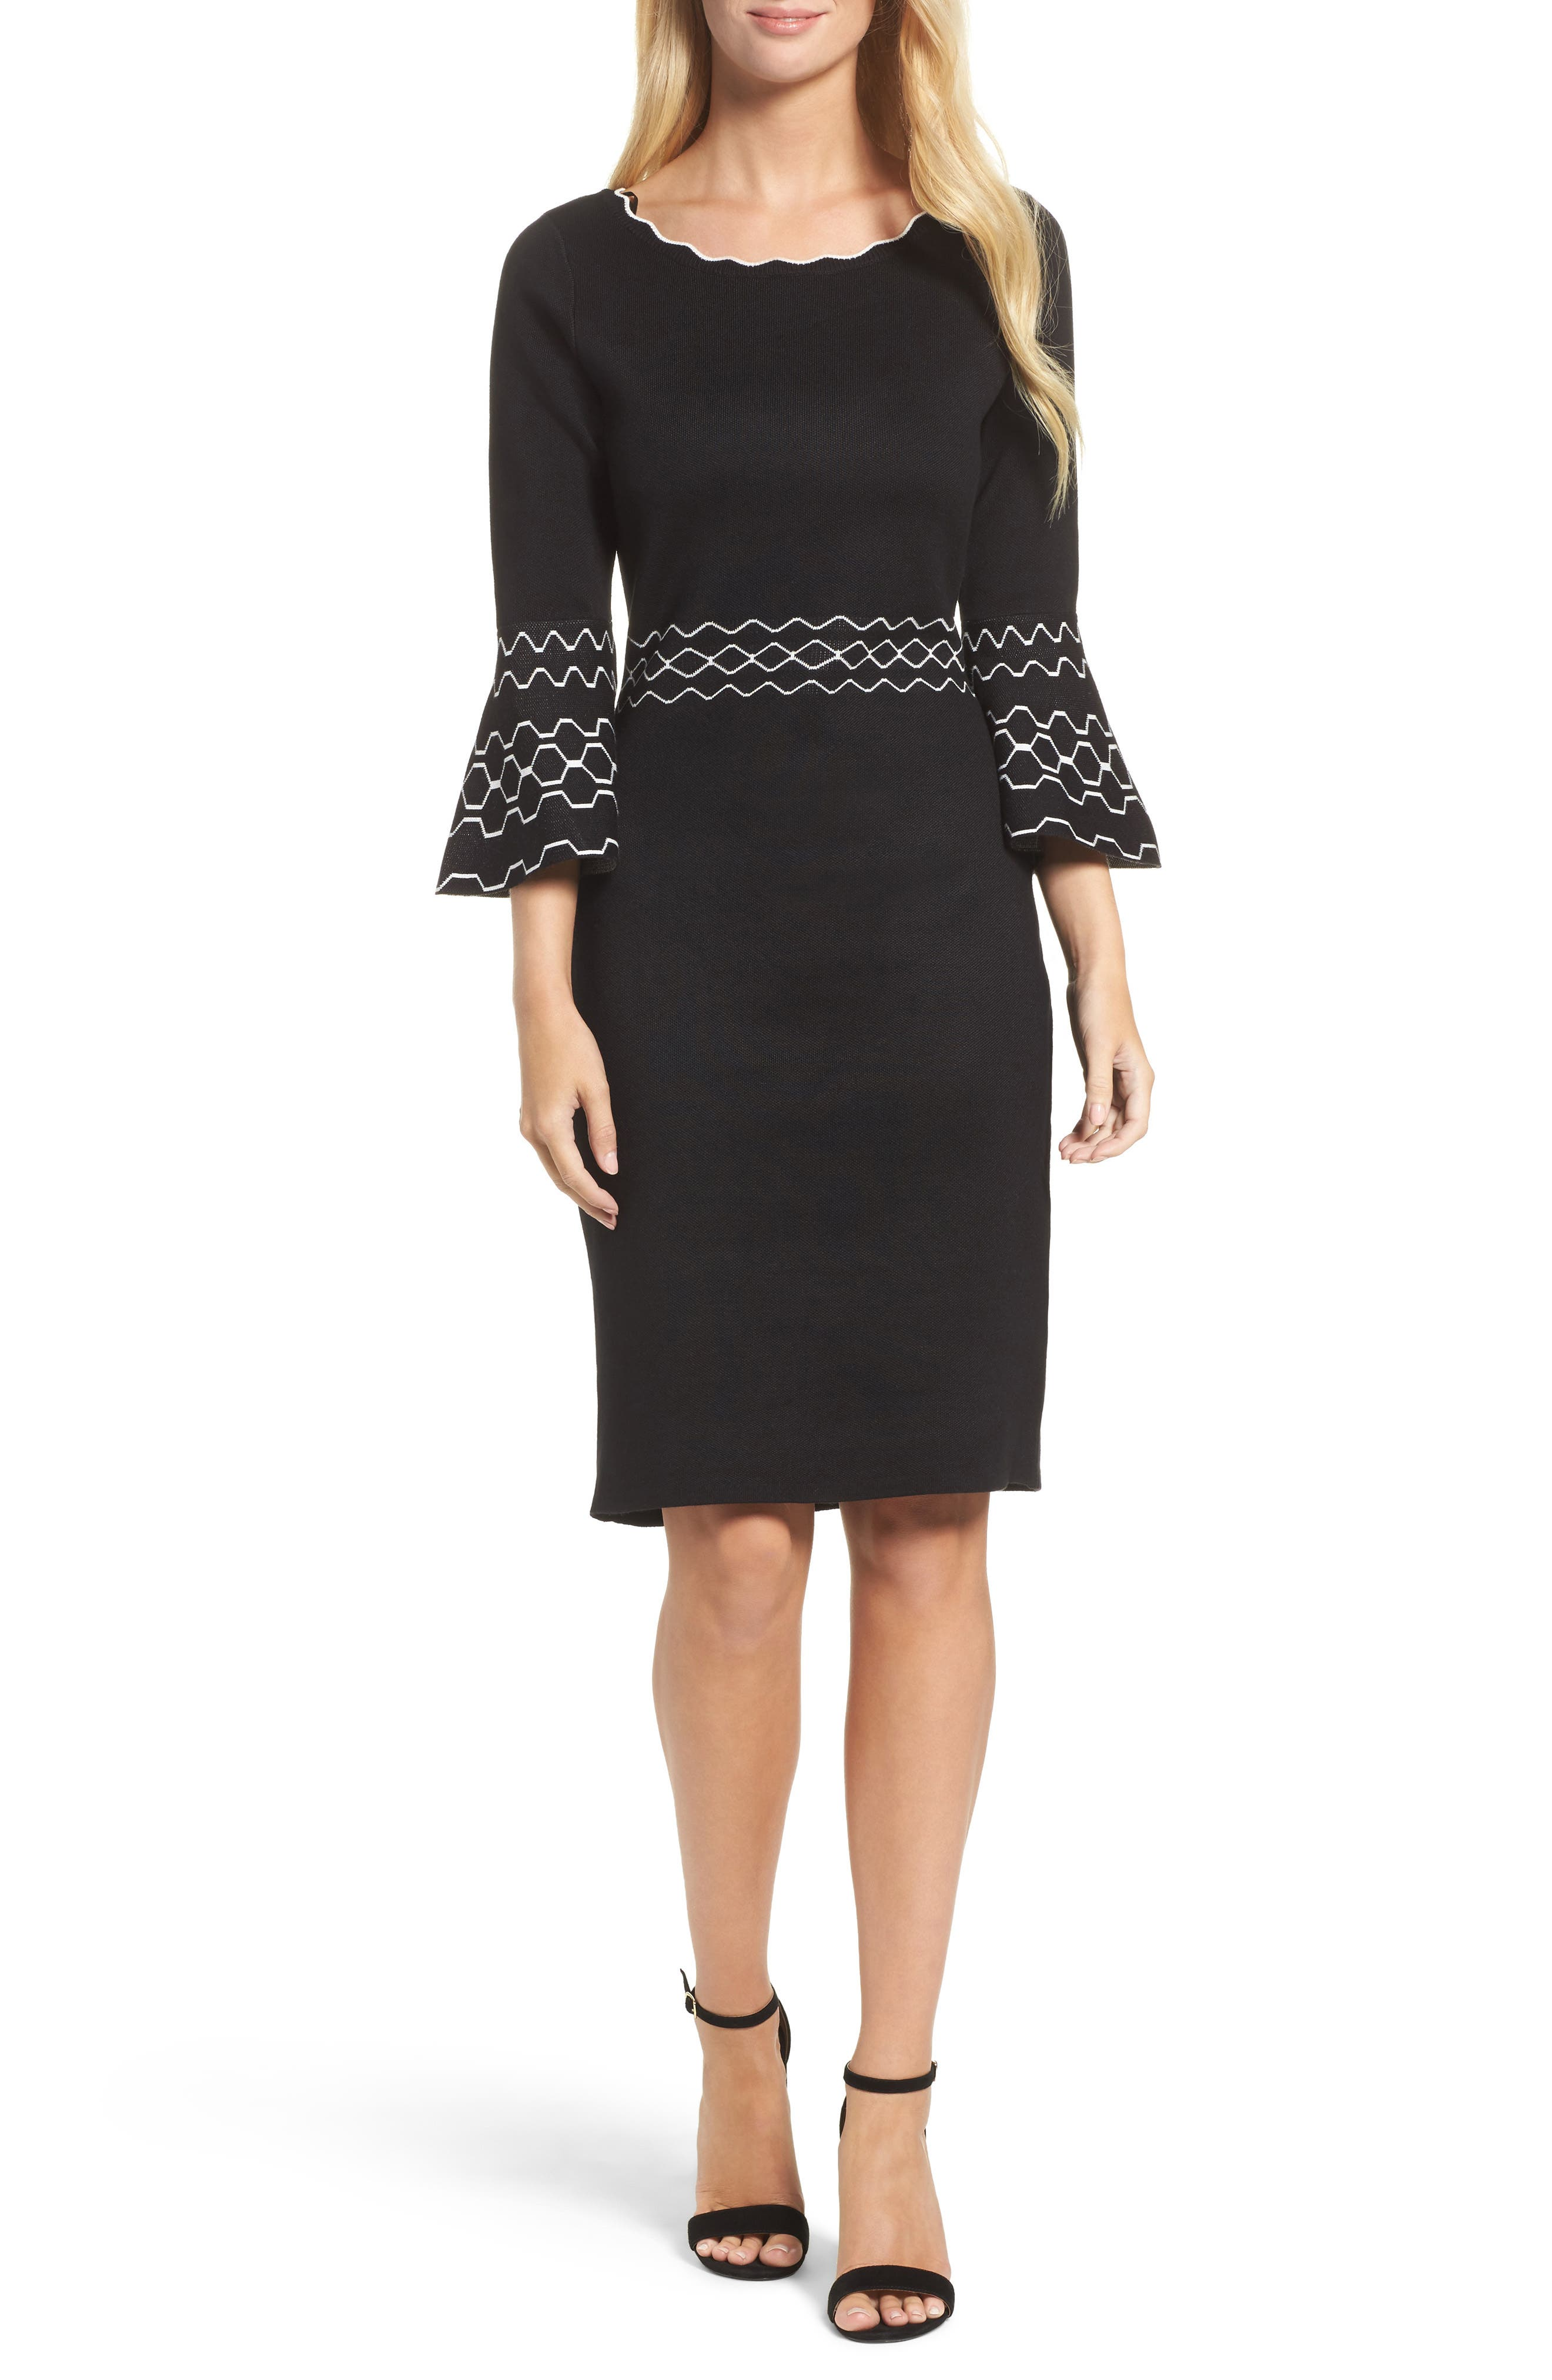 Gabby Skye Border Print Sheath Dress